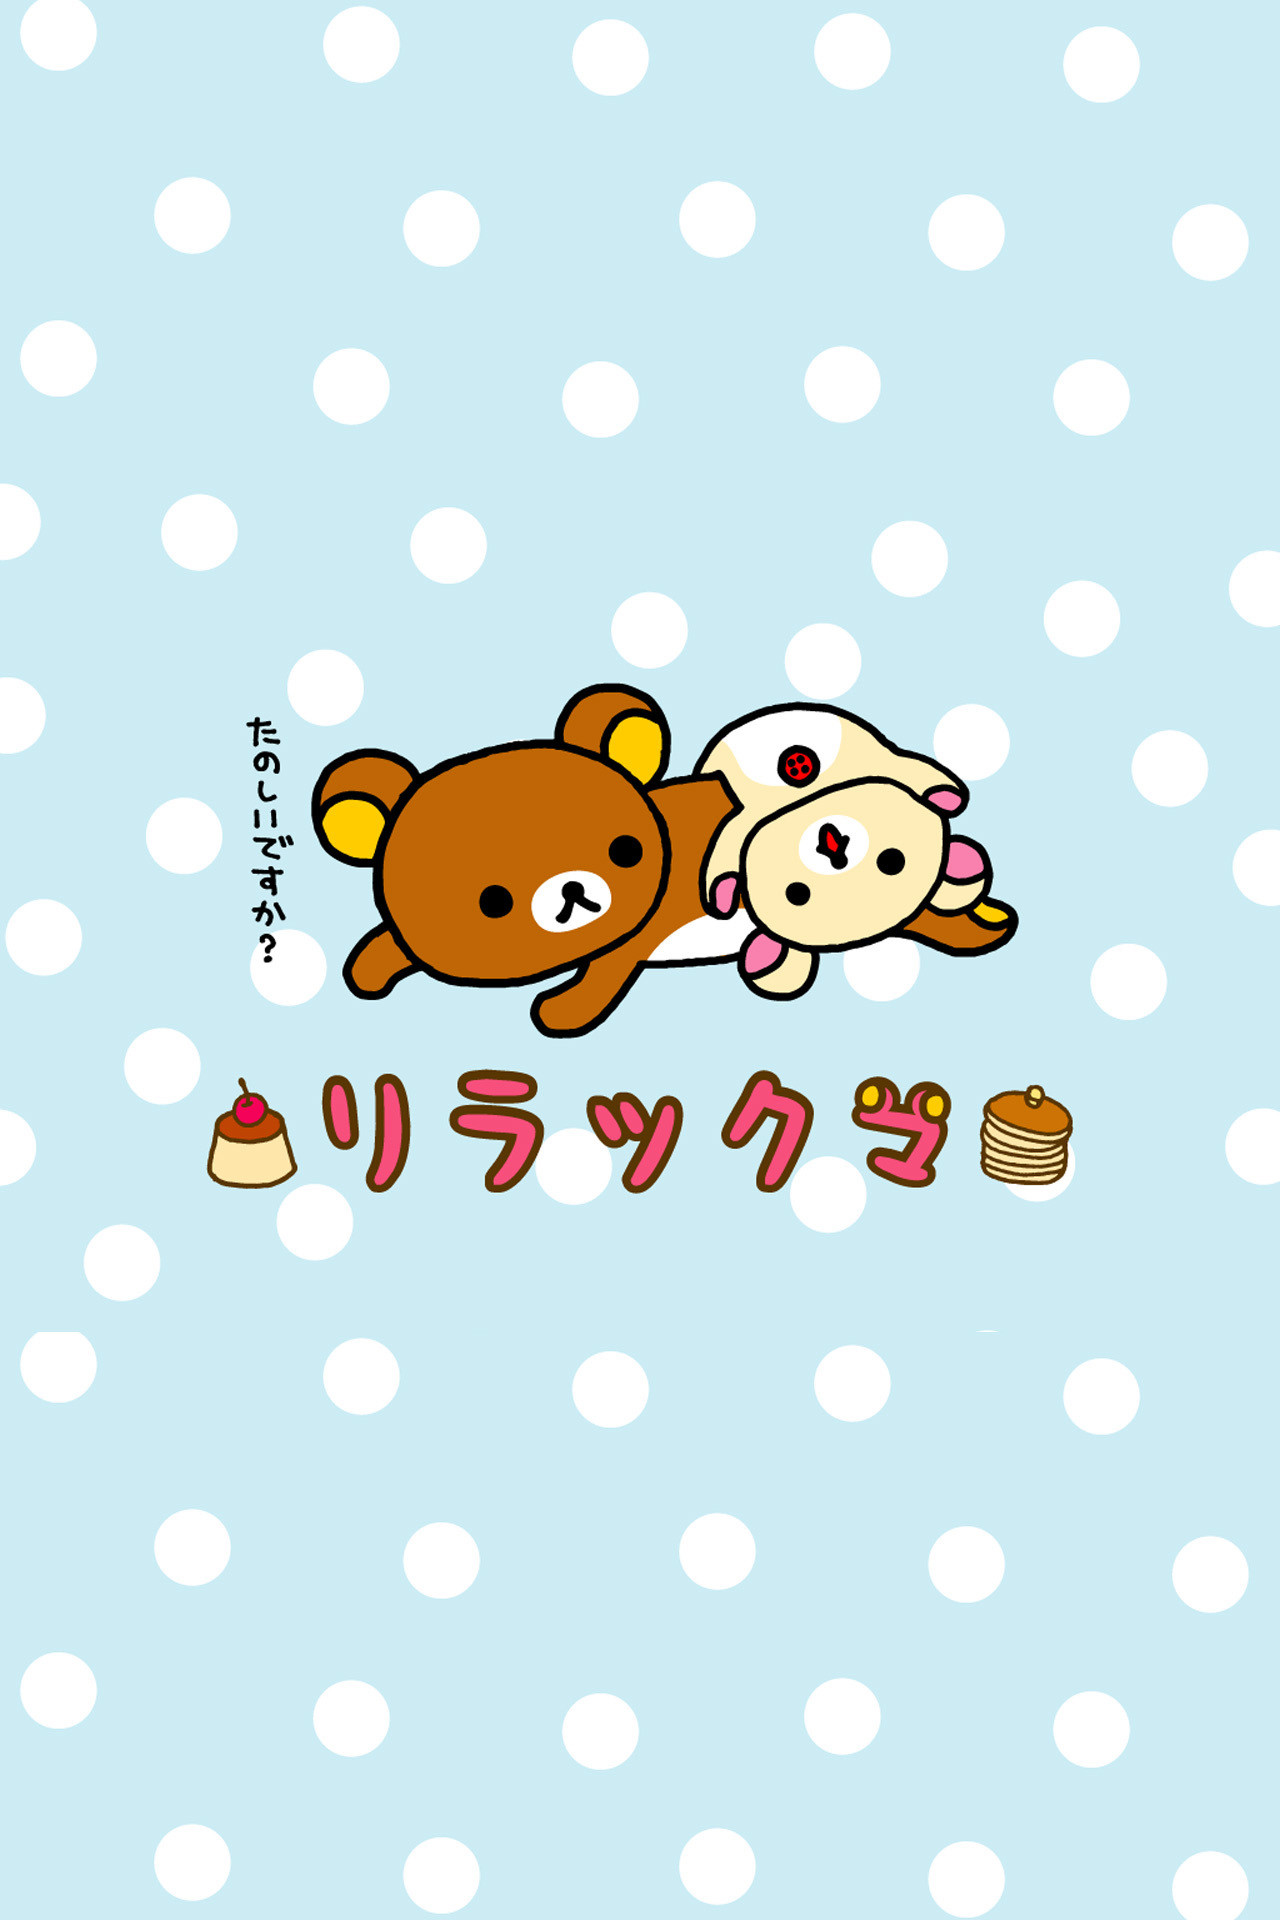 Rilakkuma IPhone Wallpaper 87 Images